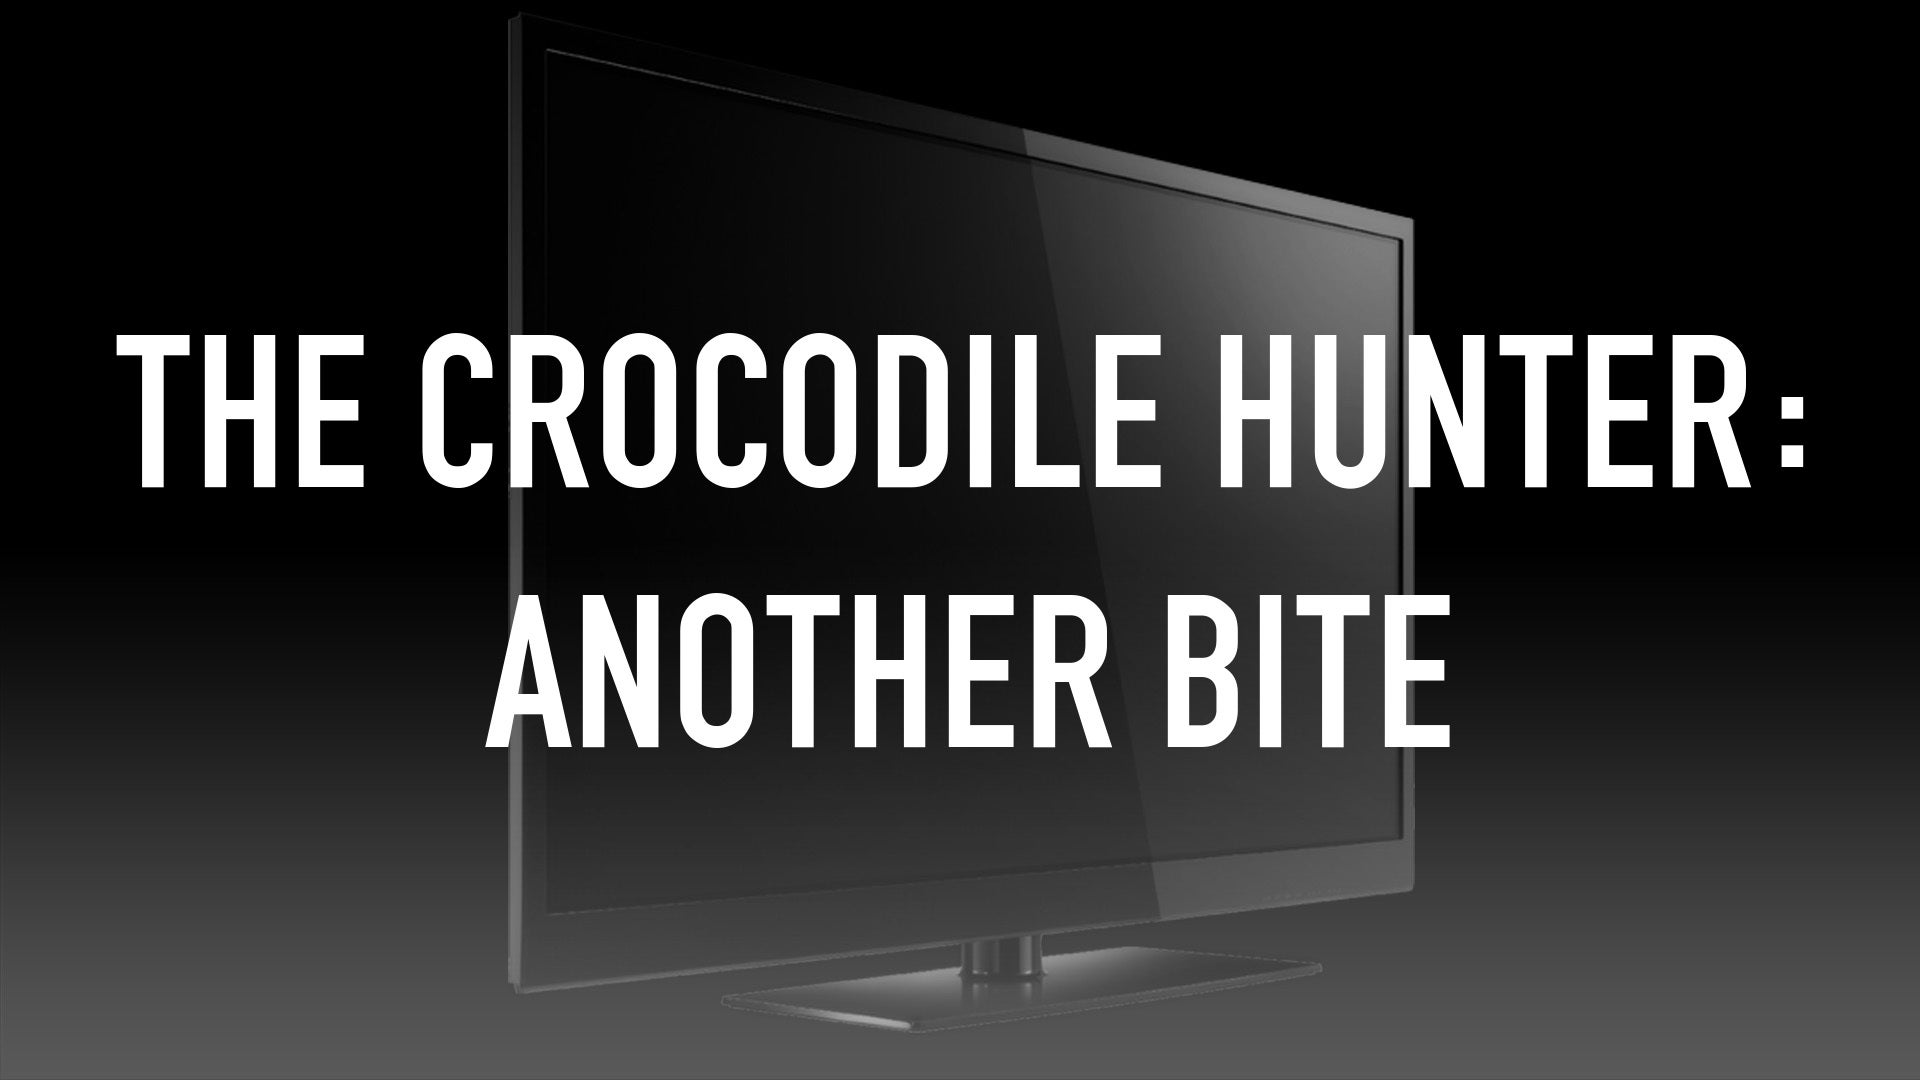 The Crocodile Hunter: Another Bite